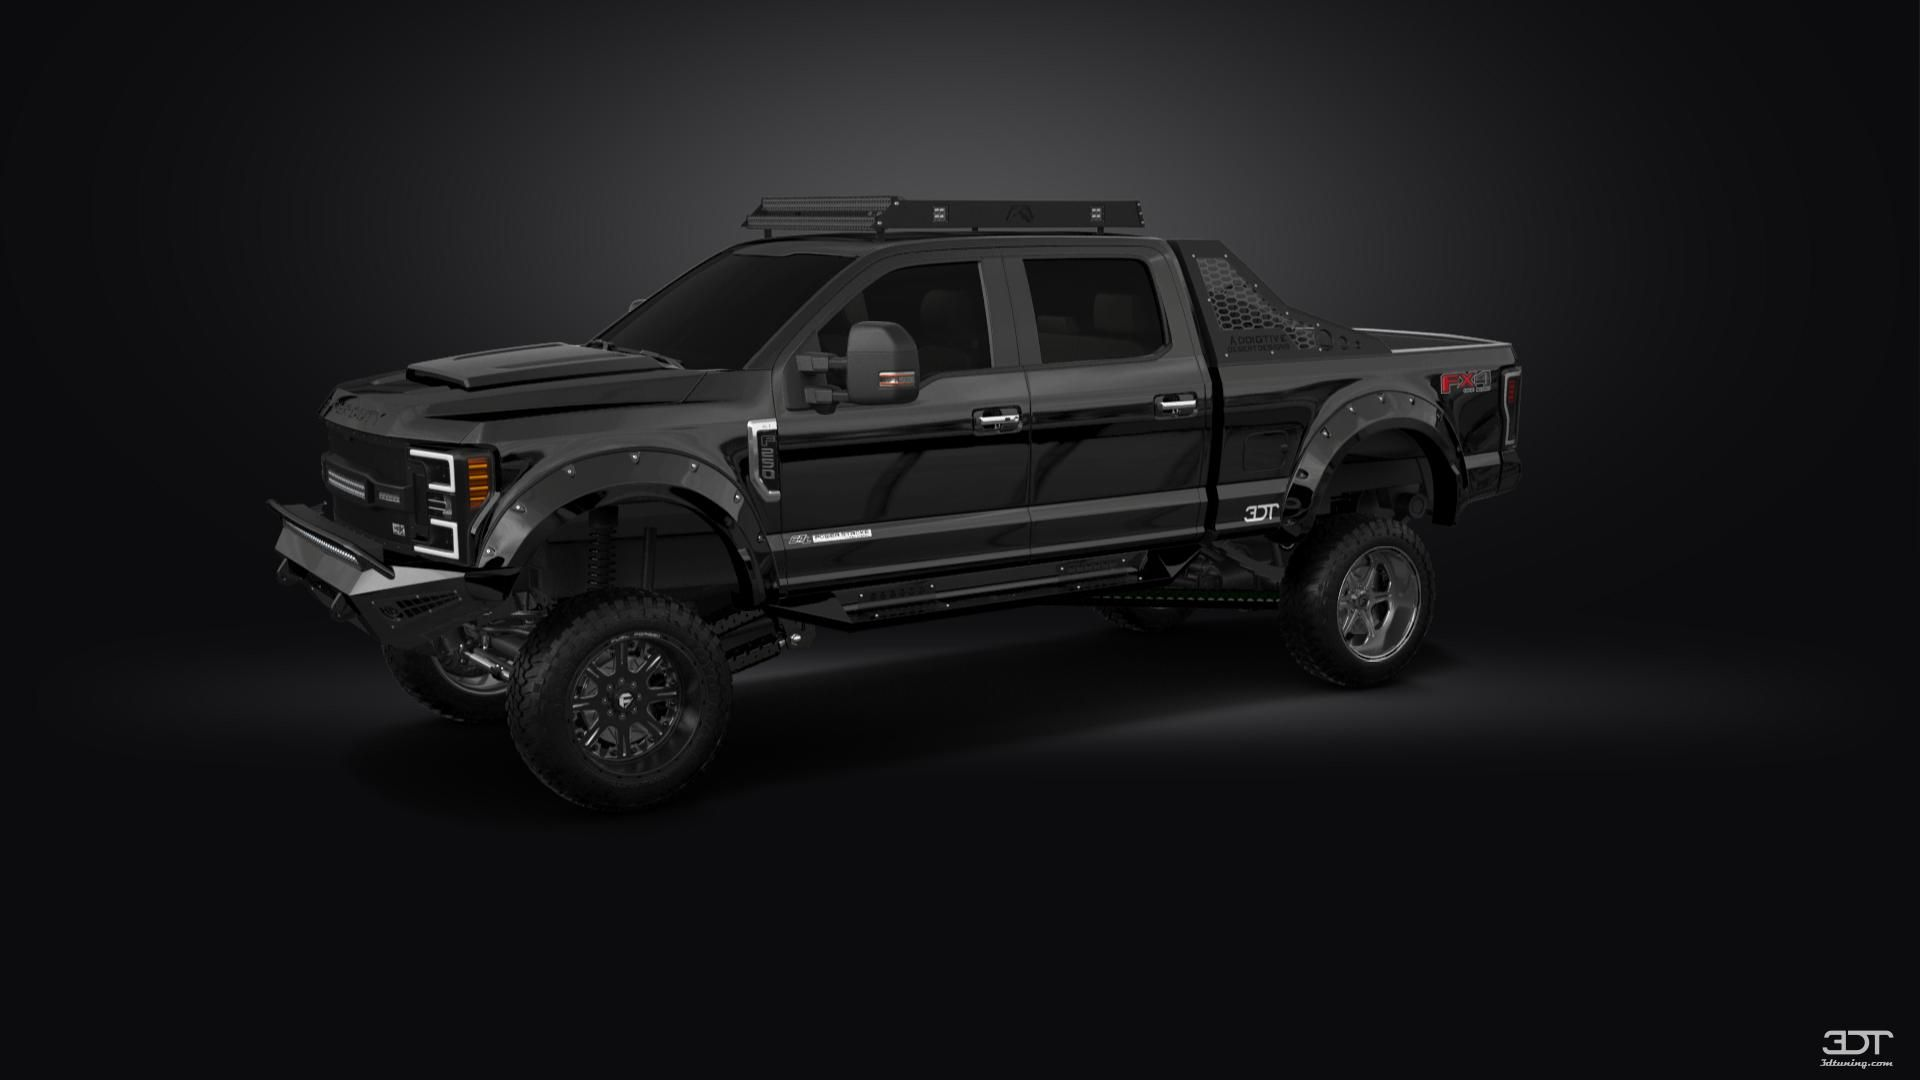 Checkout my tuning Ford F250 2018 at 3DTuning 3dtuning